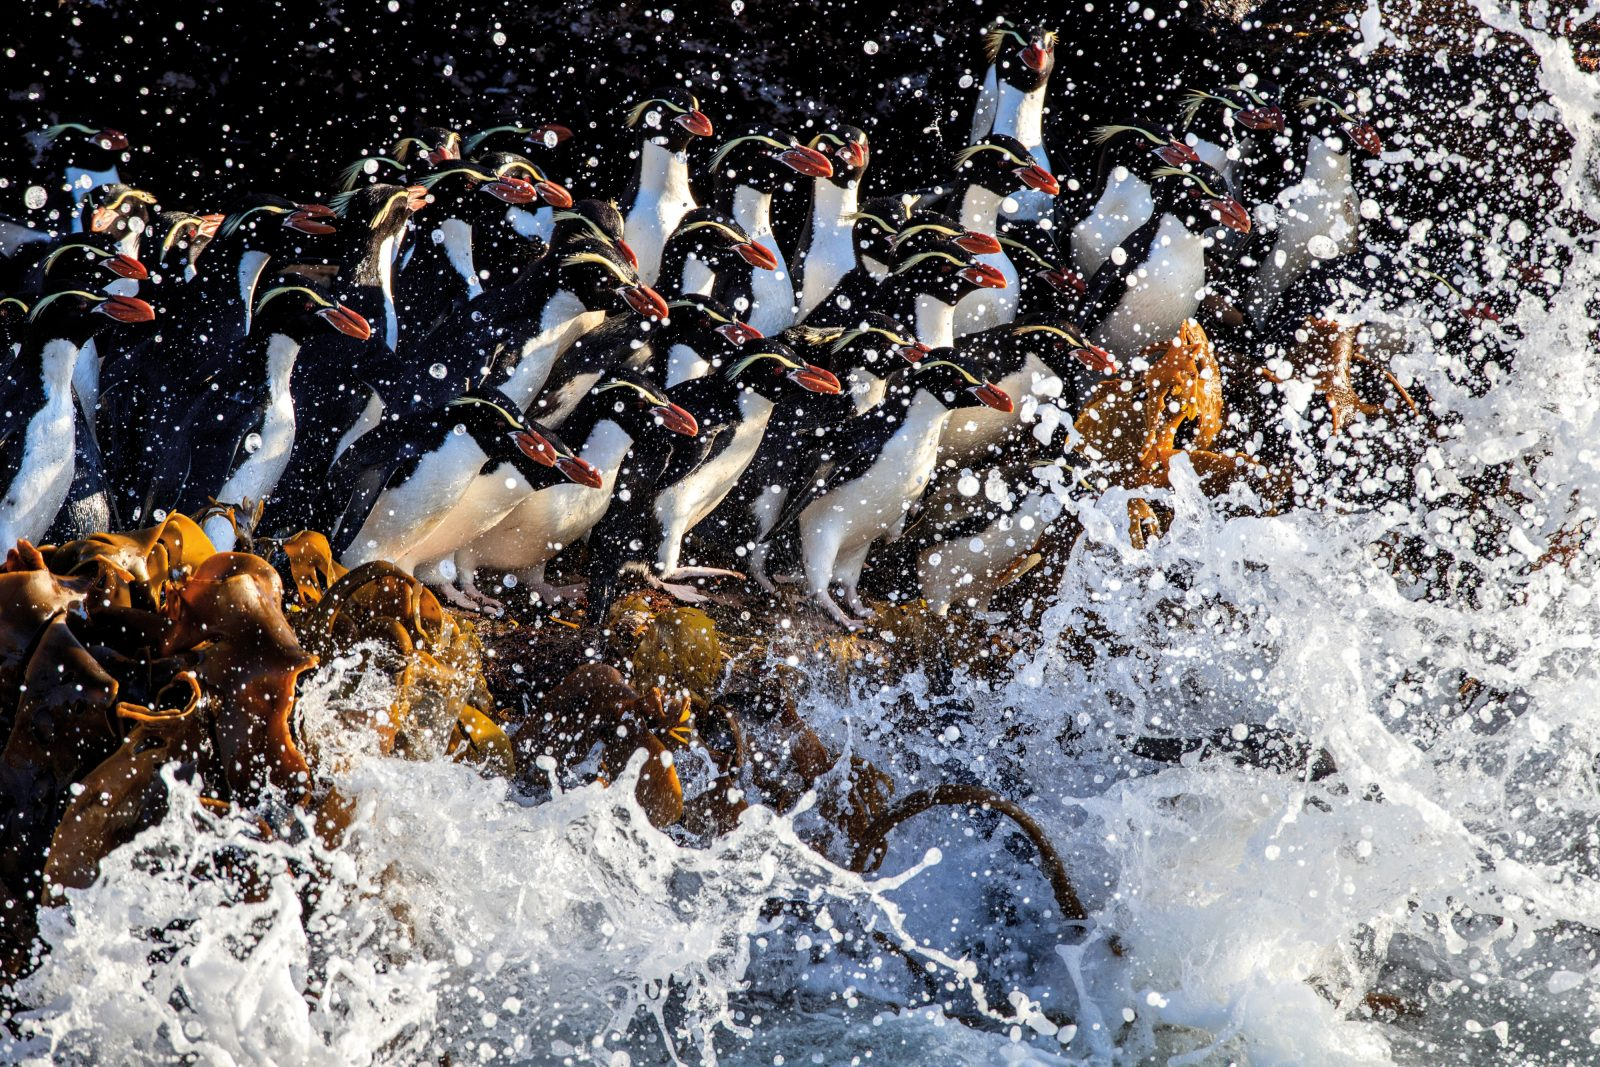 Snares crested penguins take to the sea to forage for food. Highly productive conditions around the Snares Islands make them an ideal place to raise their young. Stable isotope studies of living and historical specimens show that ocean productivity and the diet of the penguins here have remained unchanged for 120 years. This is in stark contrast to Campbell Island, where a change in ocean productivity appears to be responsible for a massive decline in rockhopper penguins. The Snares' environmental stability and pest-free status make them invaluable as a scientific control for penguin studies around the world.